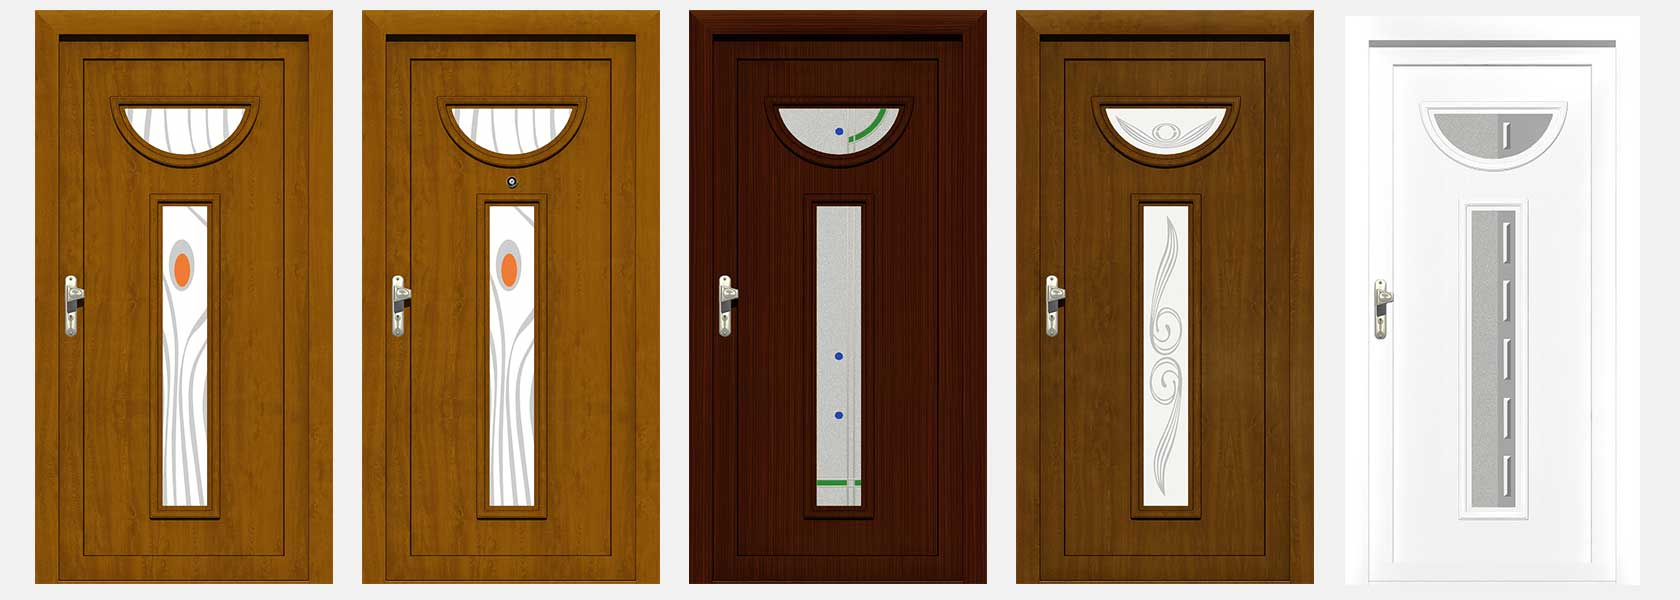 upvc front doors panels